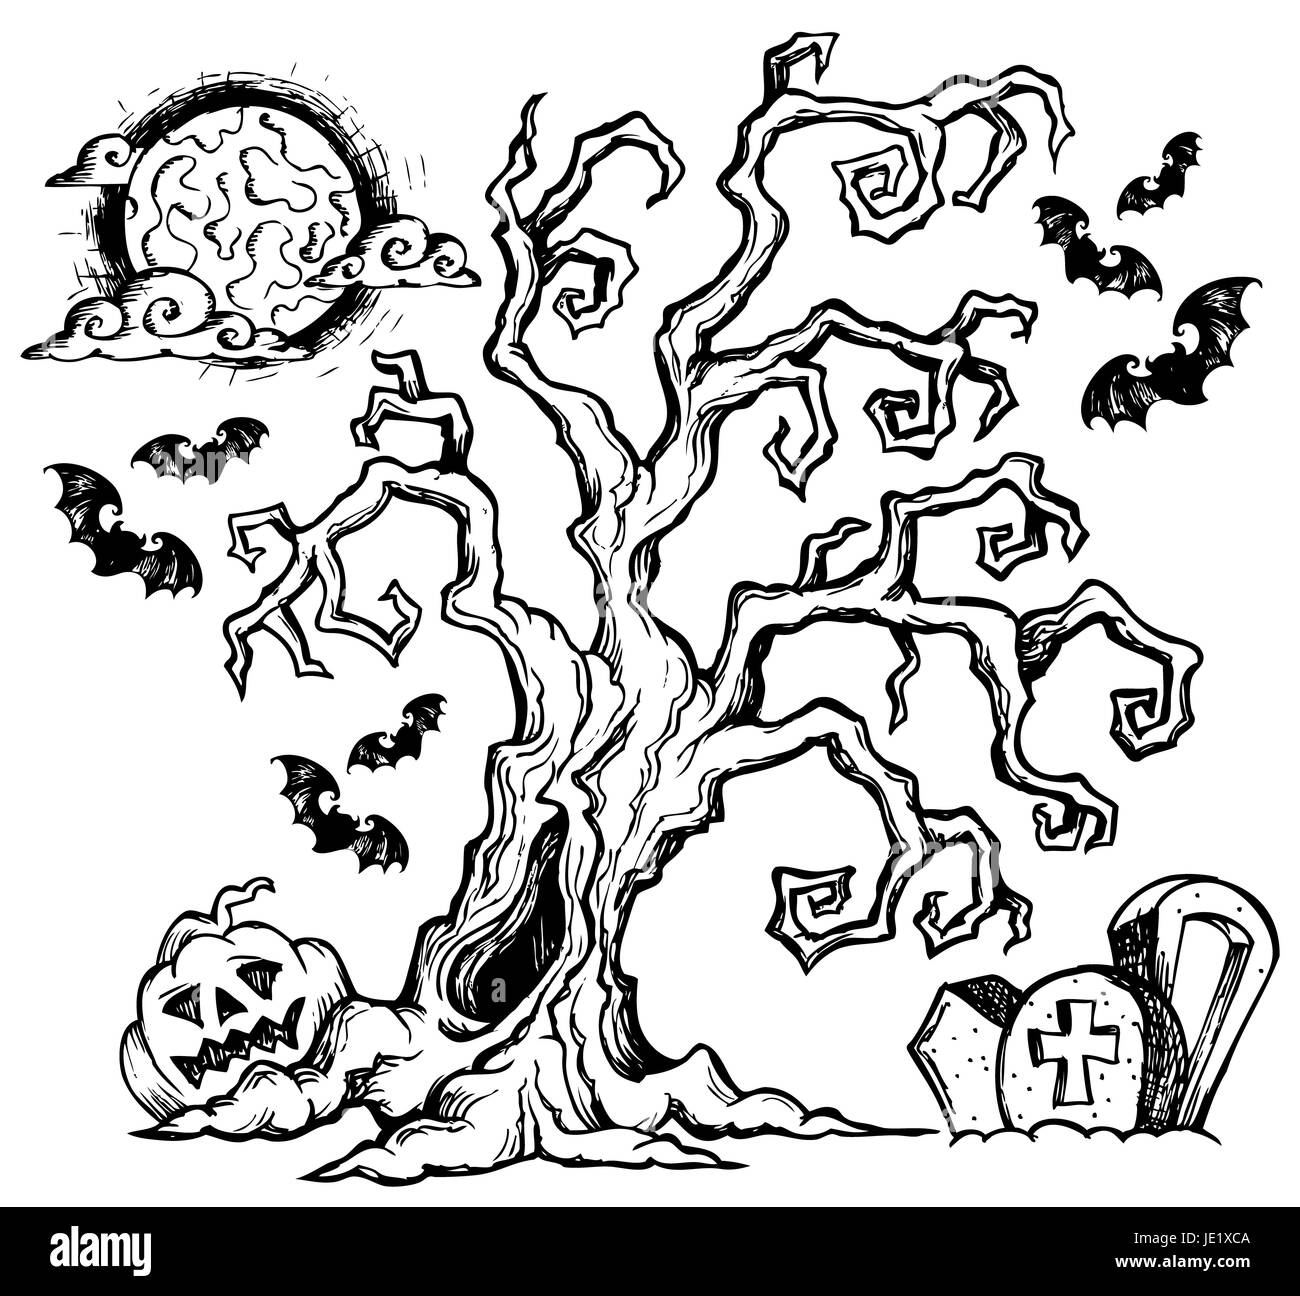 Halloween Theme Drawing 4 Picture Illustration Stock Photo Alamy